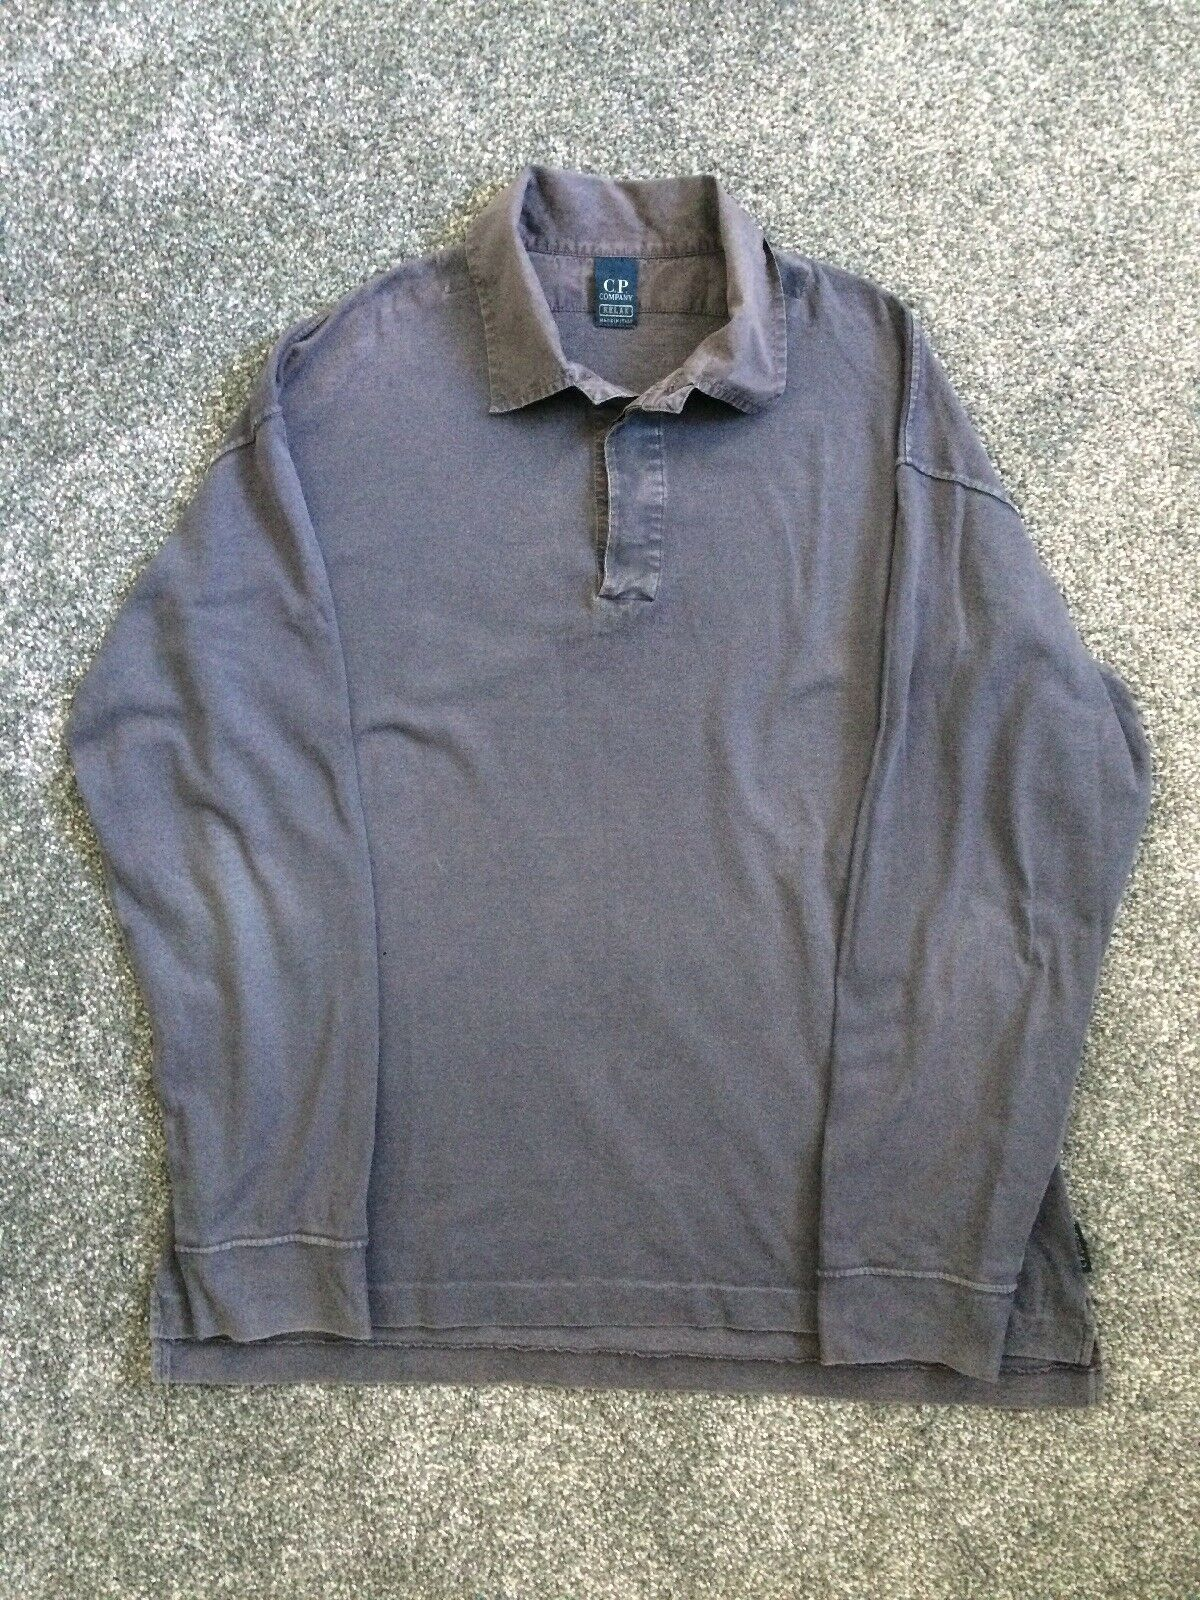 Mens CP Company 'Relax' Top Size XL